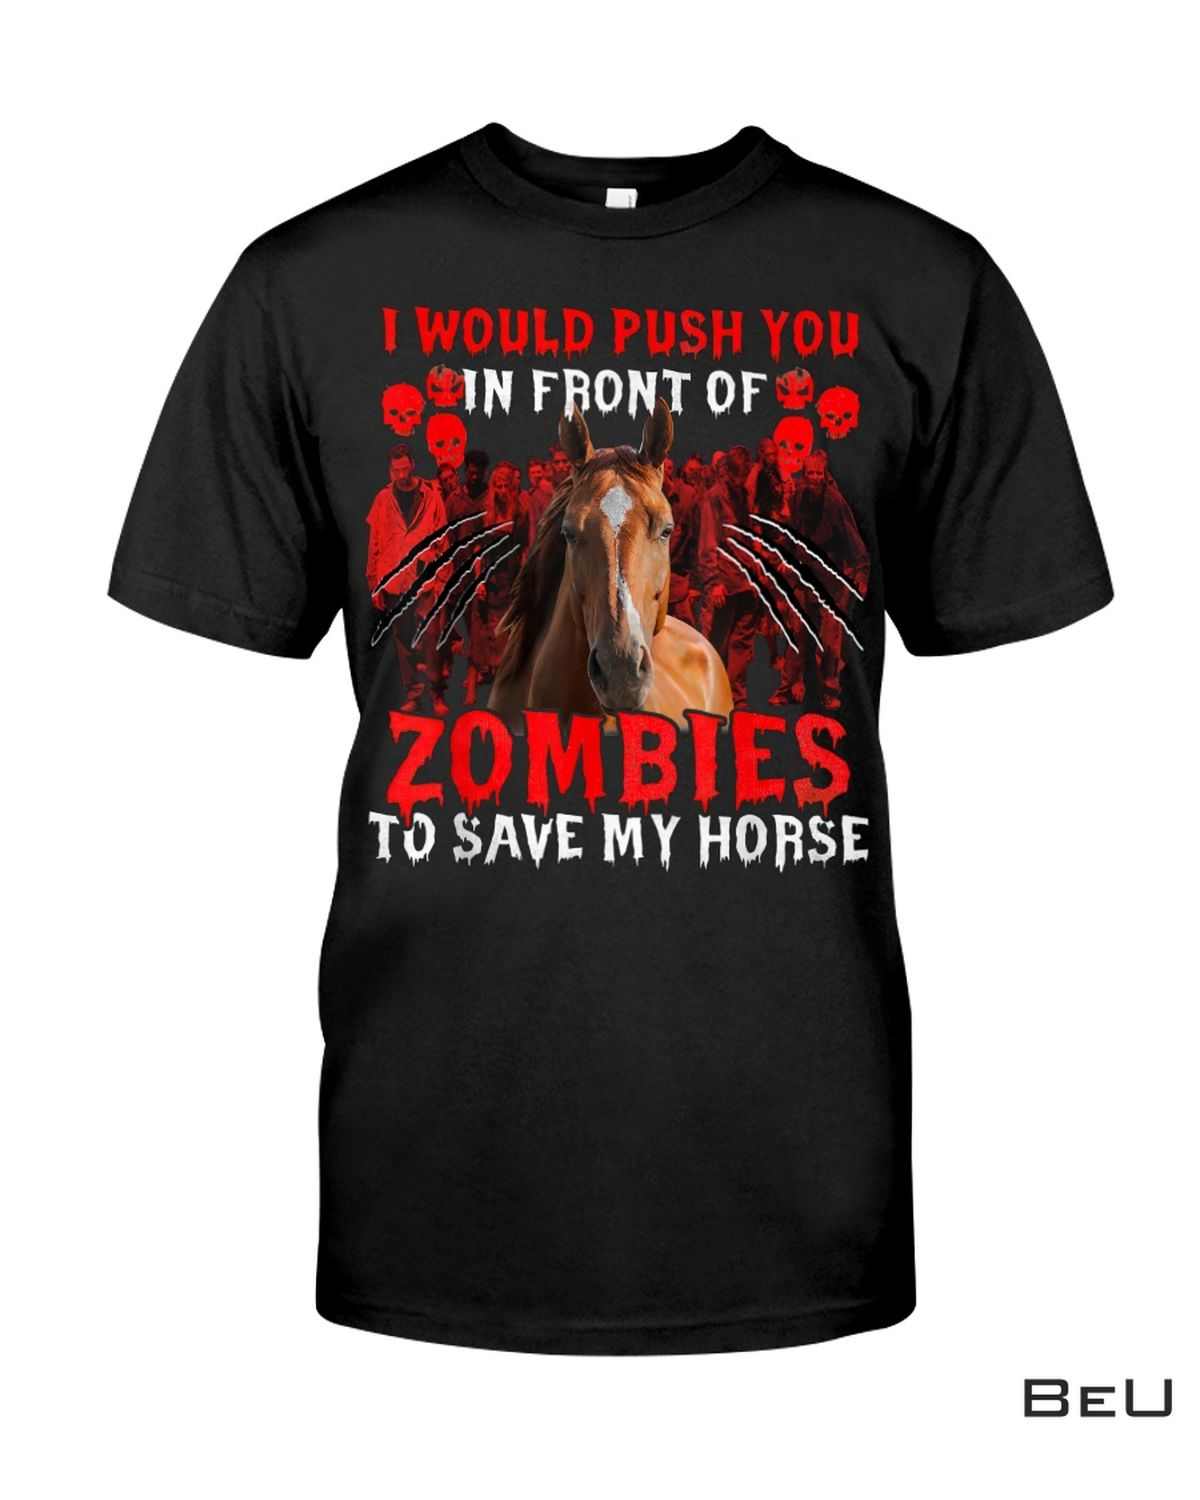 I Would Push You In Front Of Zombies To Save My Horse Shirt, hoodie, tank top